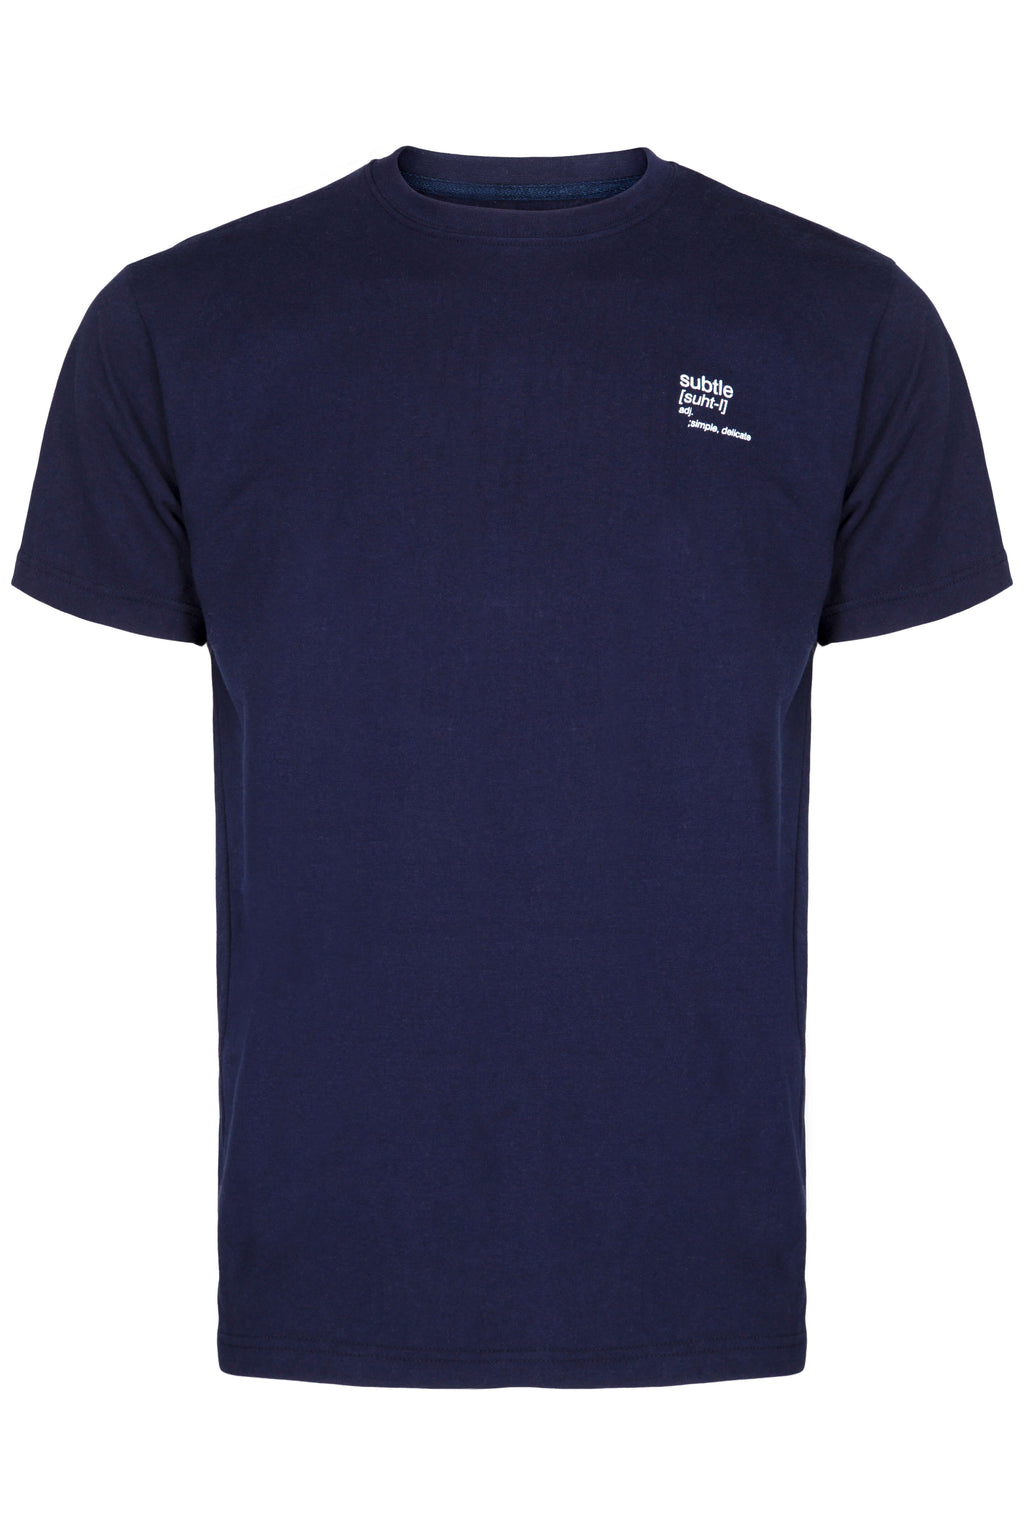 Organic Navy Definition T-Shirt made by subtledk